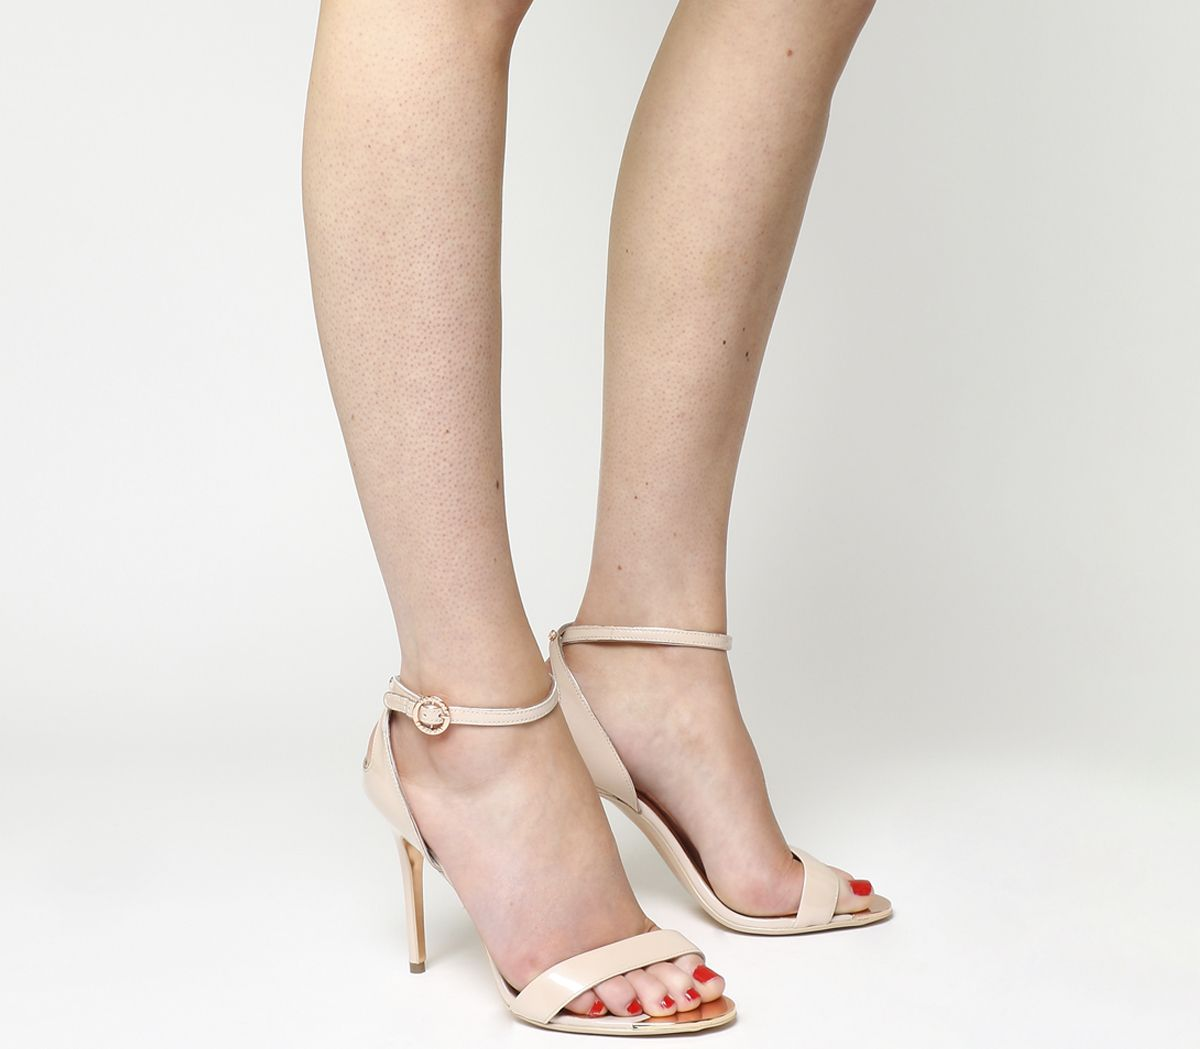 f10e090d4 Ted Baker Mirobell Strappy Heels Nude Patent Leather - High Heels